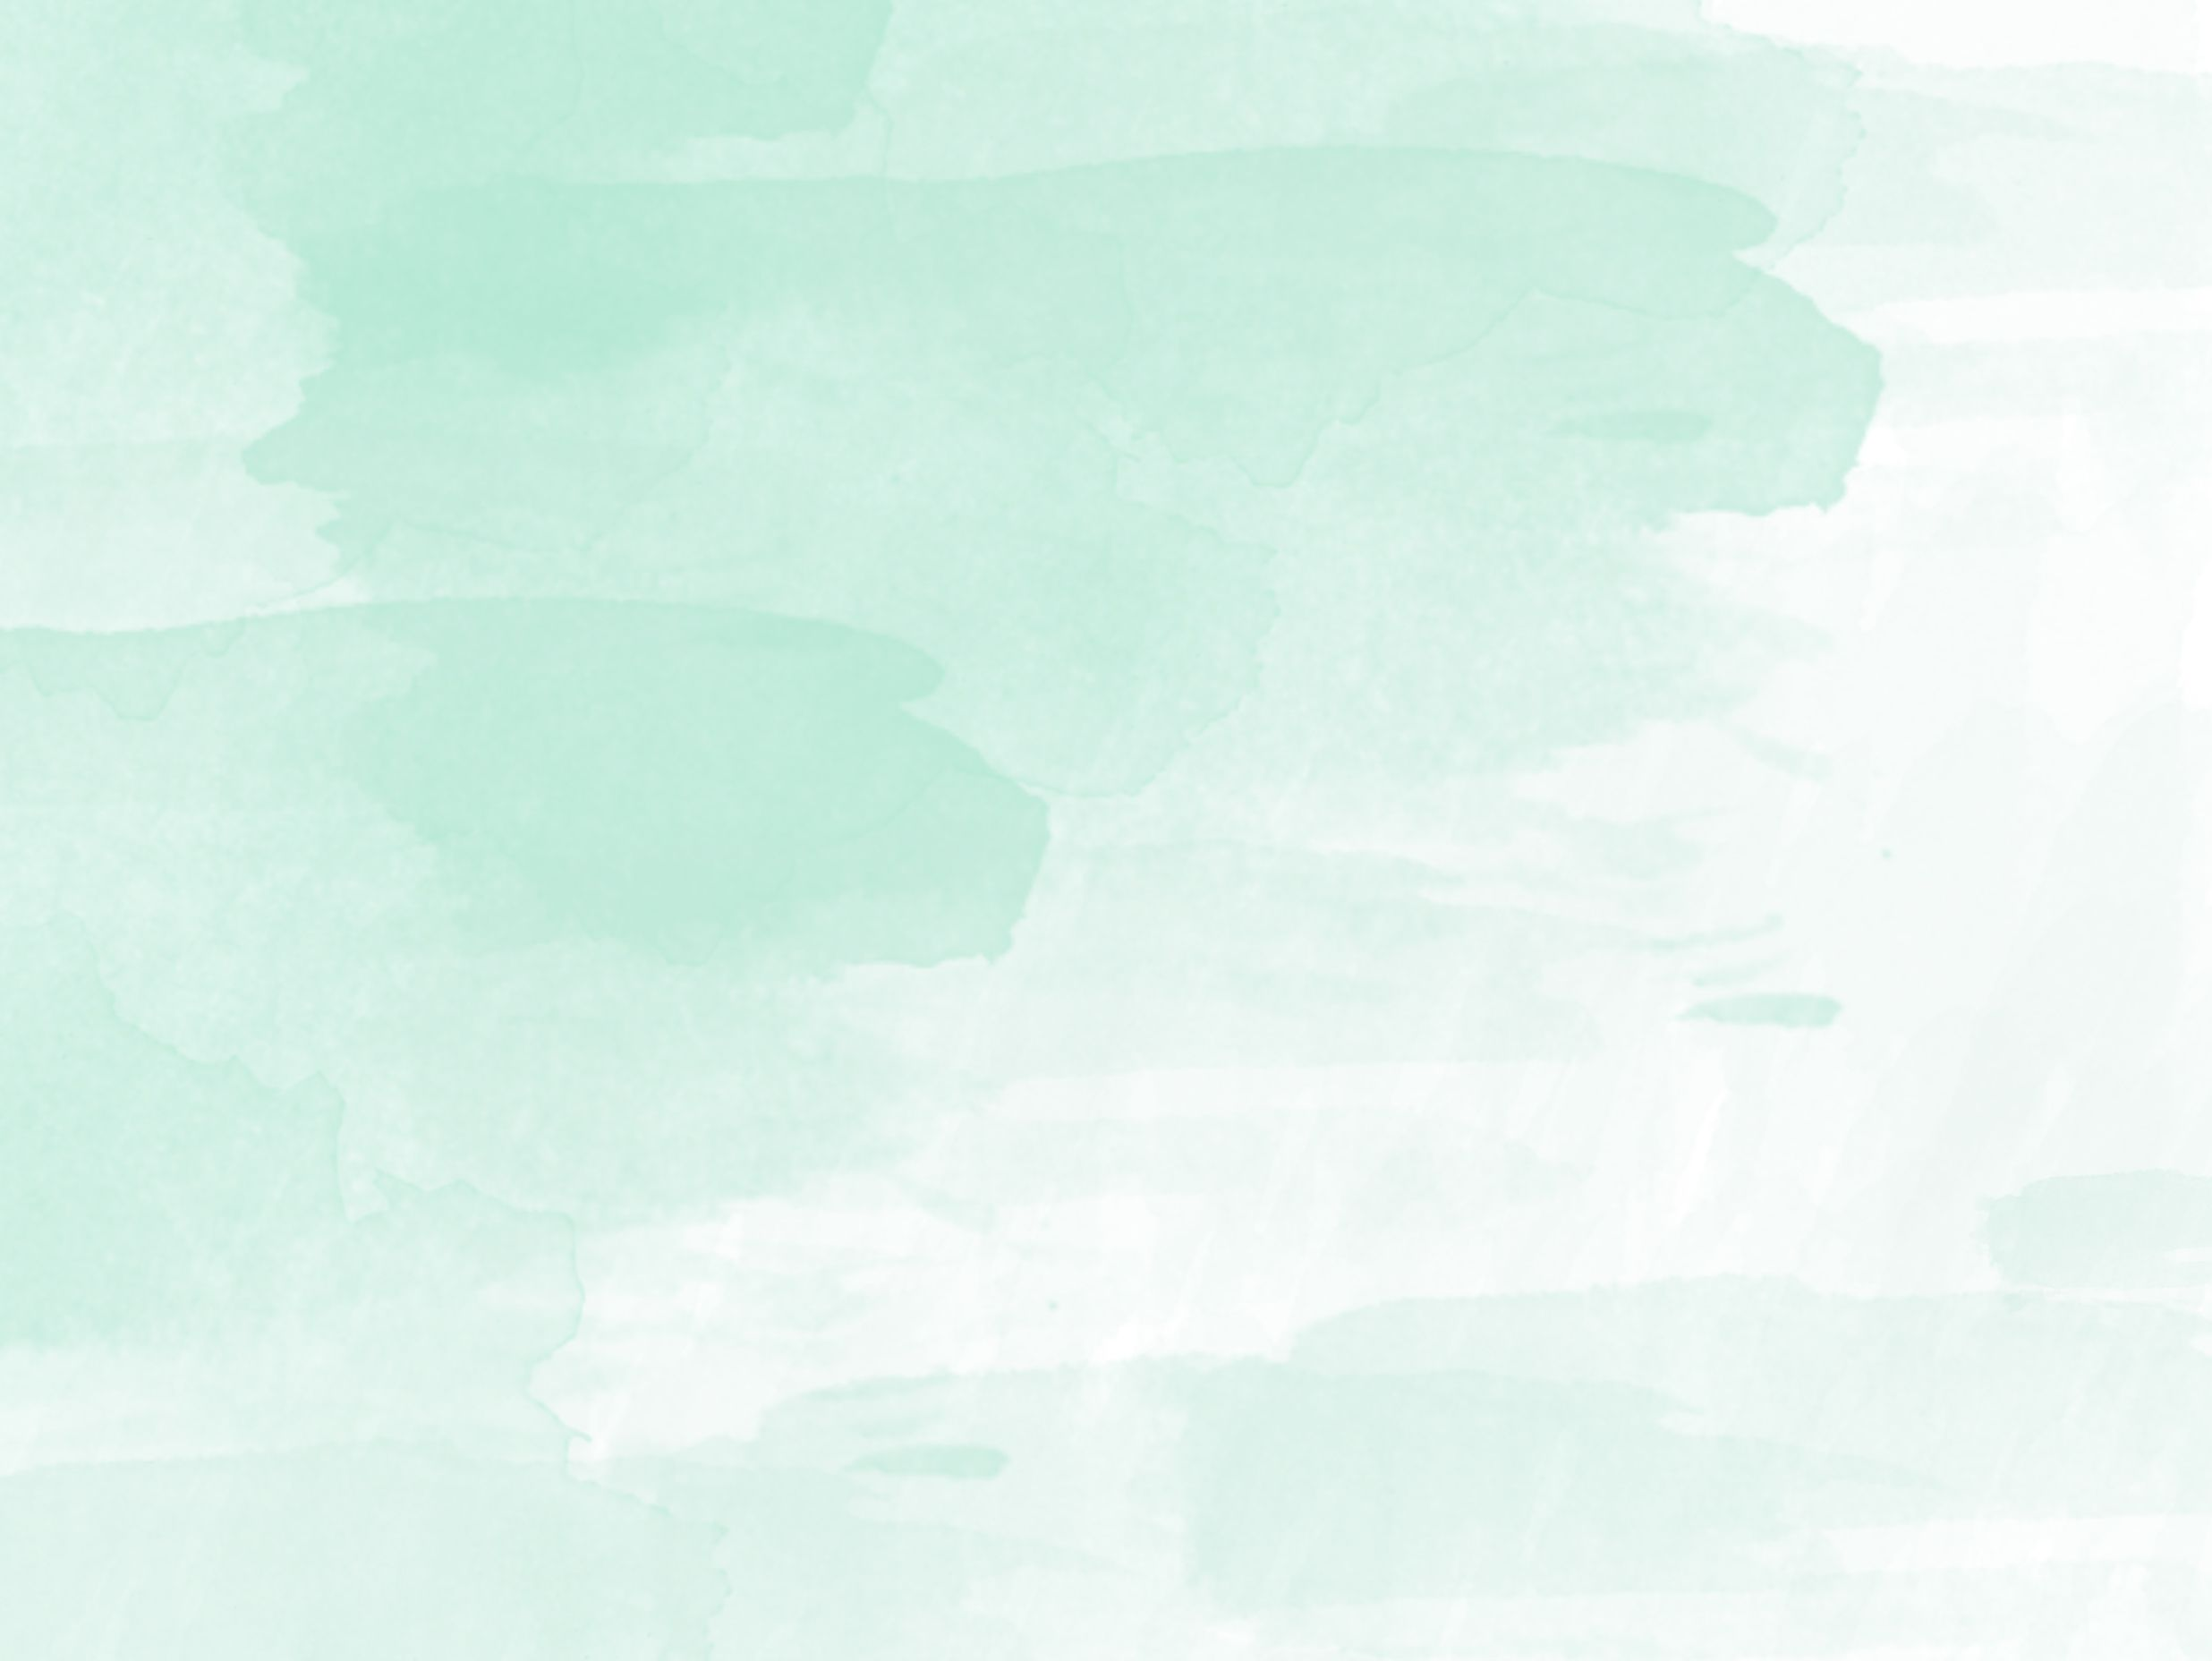 Mint Green Wallpaper Tumblr Posted By Ethan Thompson